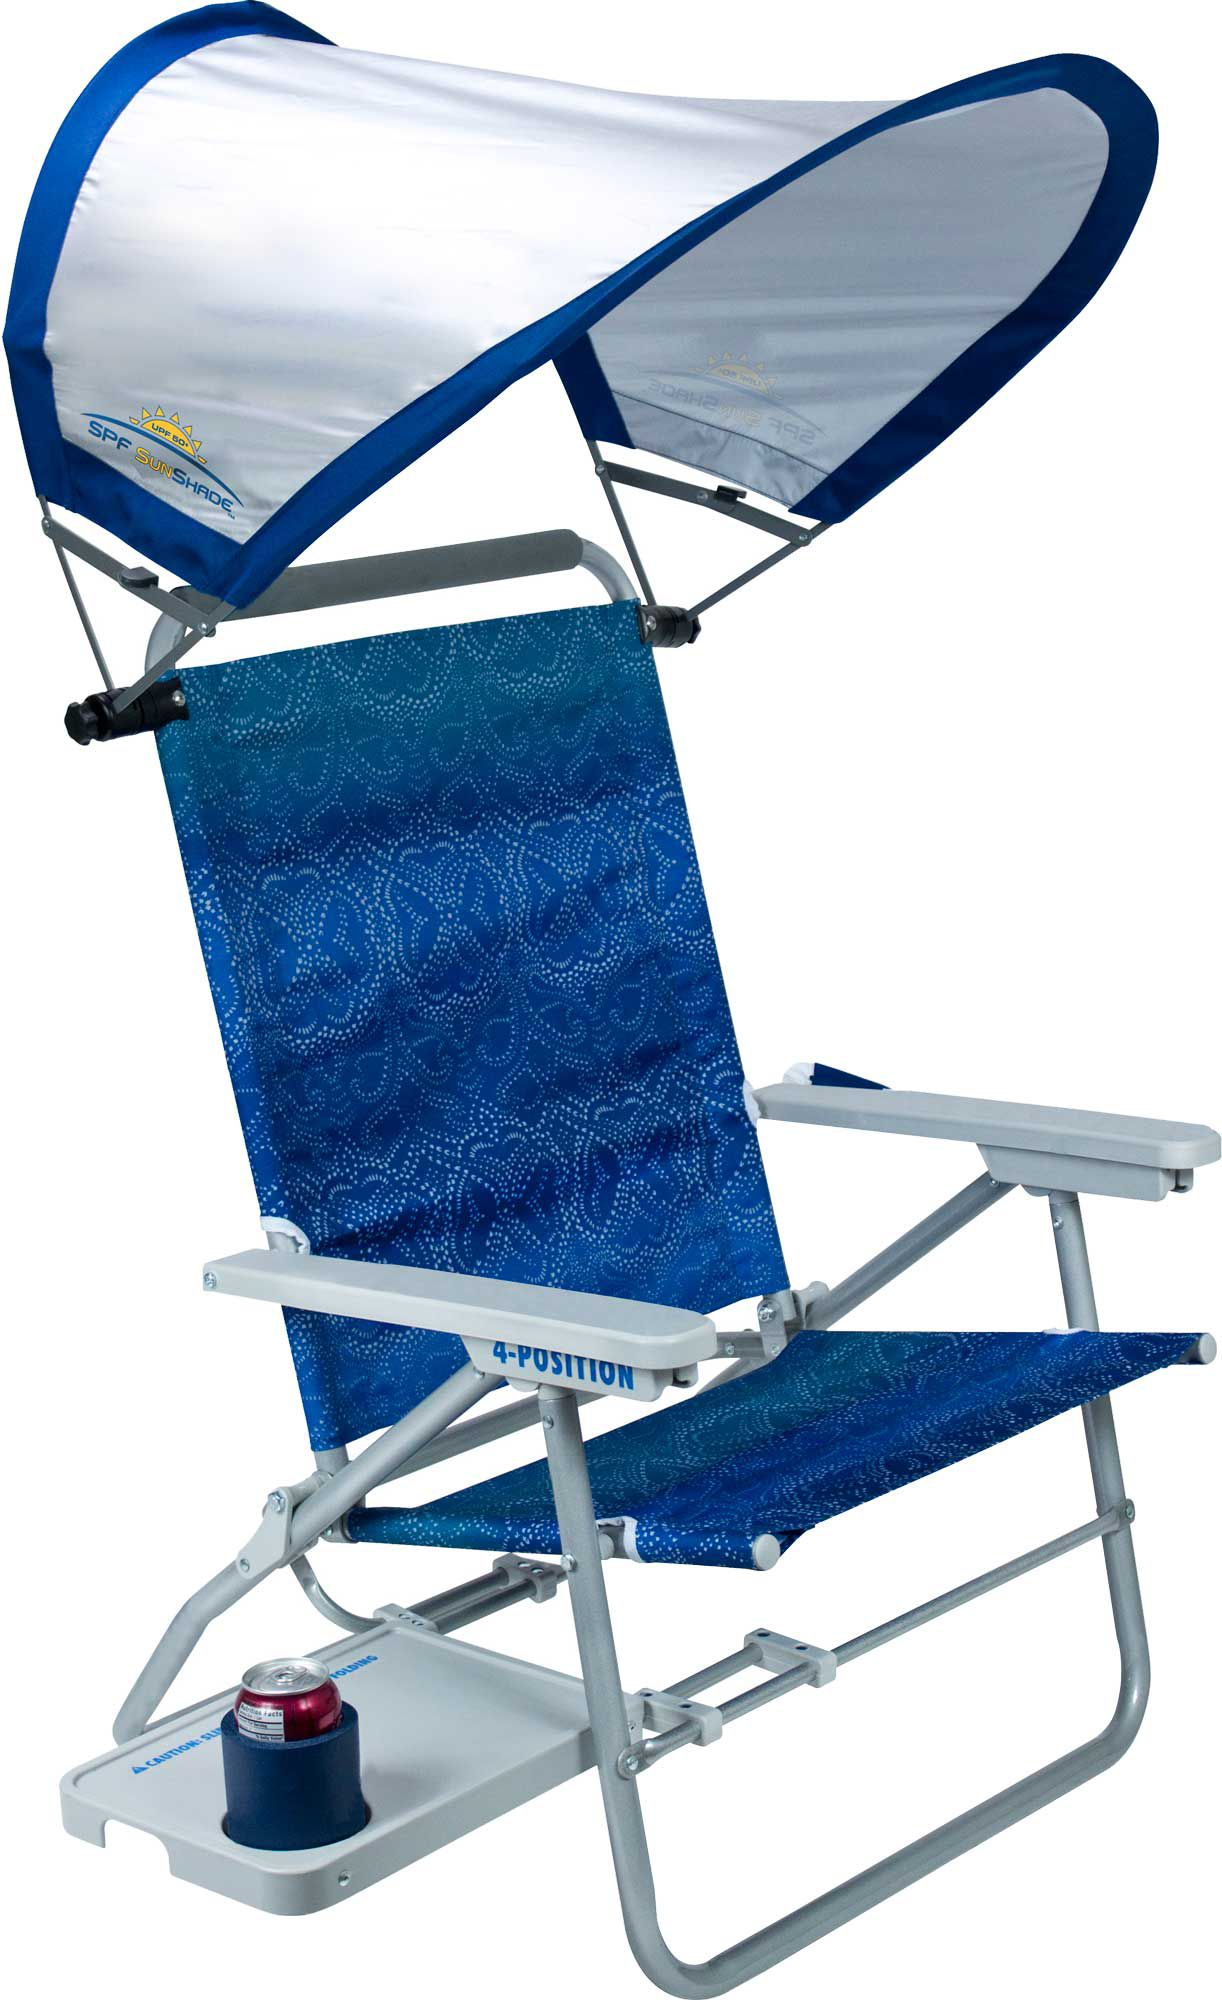 chair with canopy handicap shower chairs wheels camping folding best price guarantee at dick s product image gci waterside big surf beach sunshade